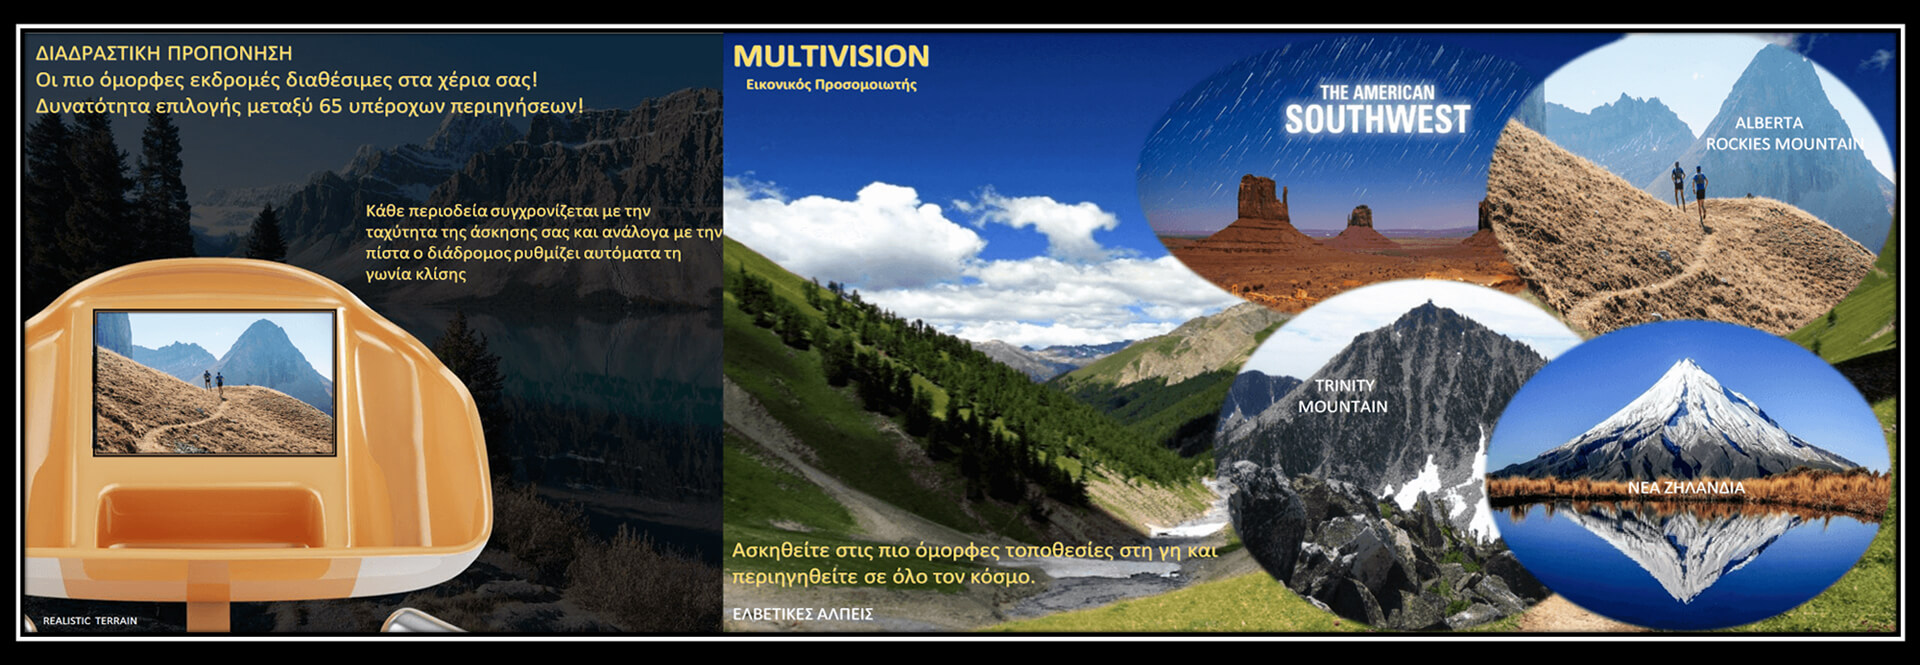 multivision-vacuactiv-banner